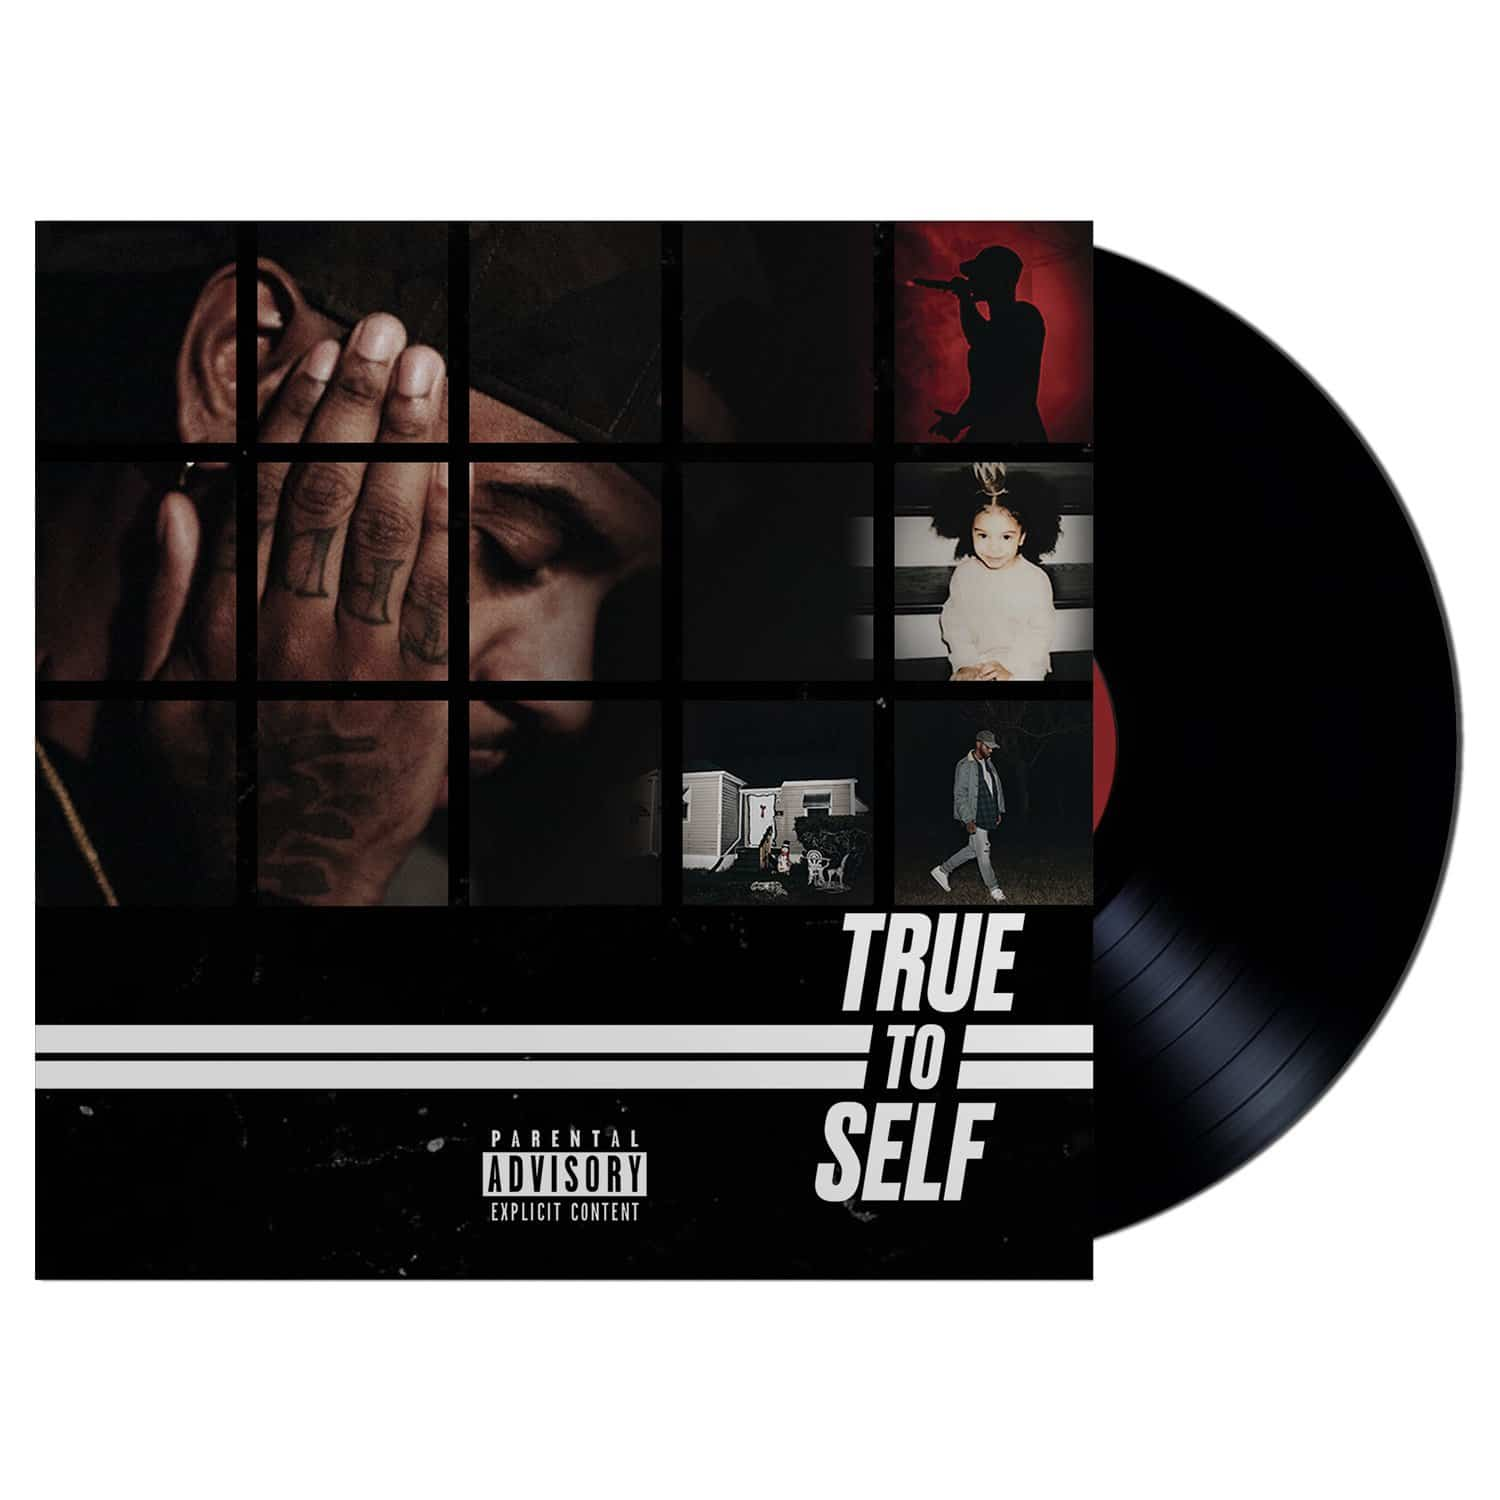 "'True To Self' 2 x 12"" Vinyl LP + MP3 - PREORDER (SHIPS 11/03)"